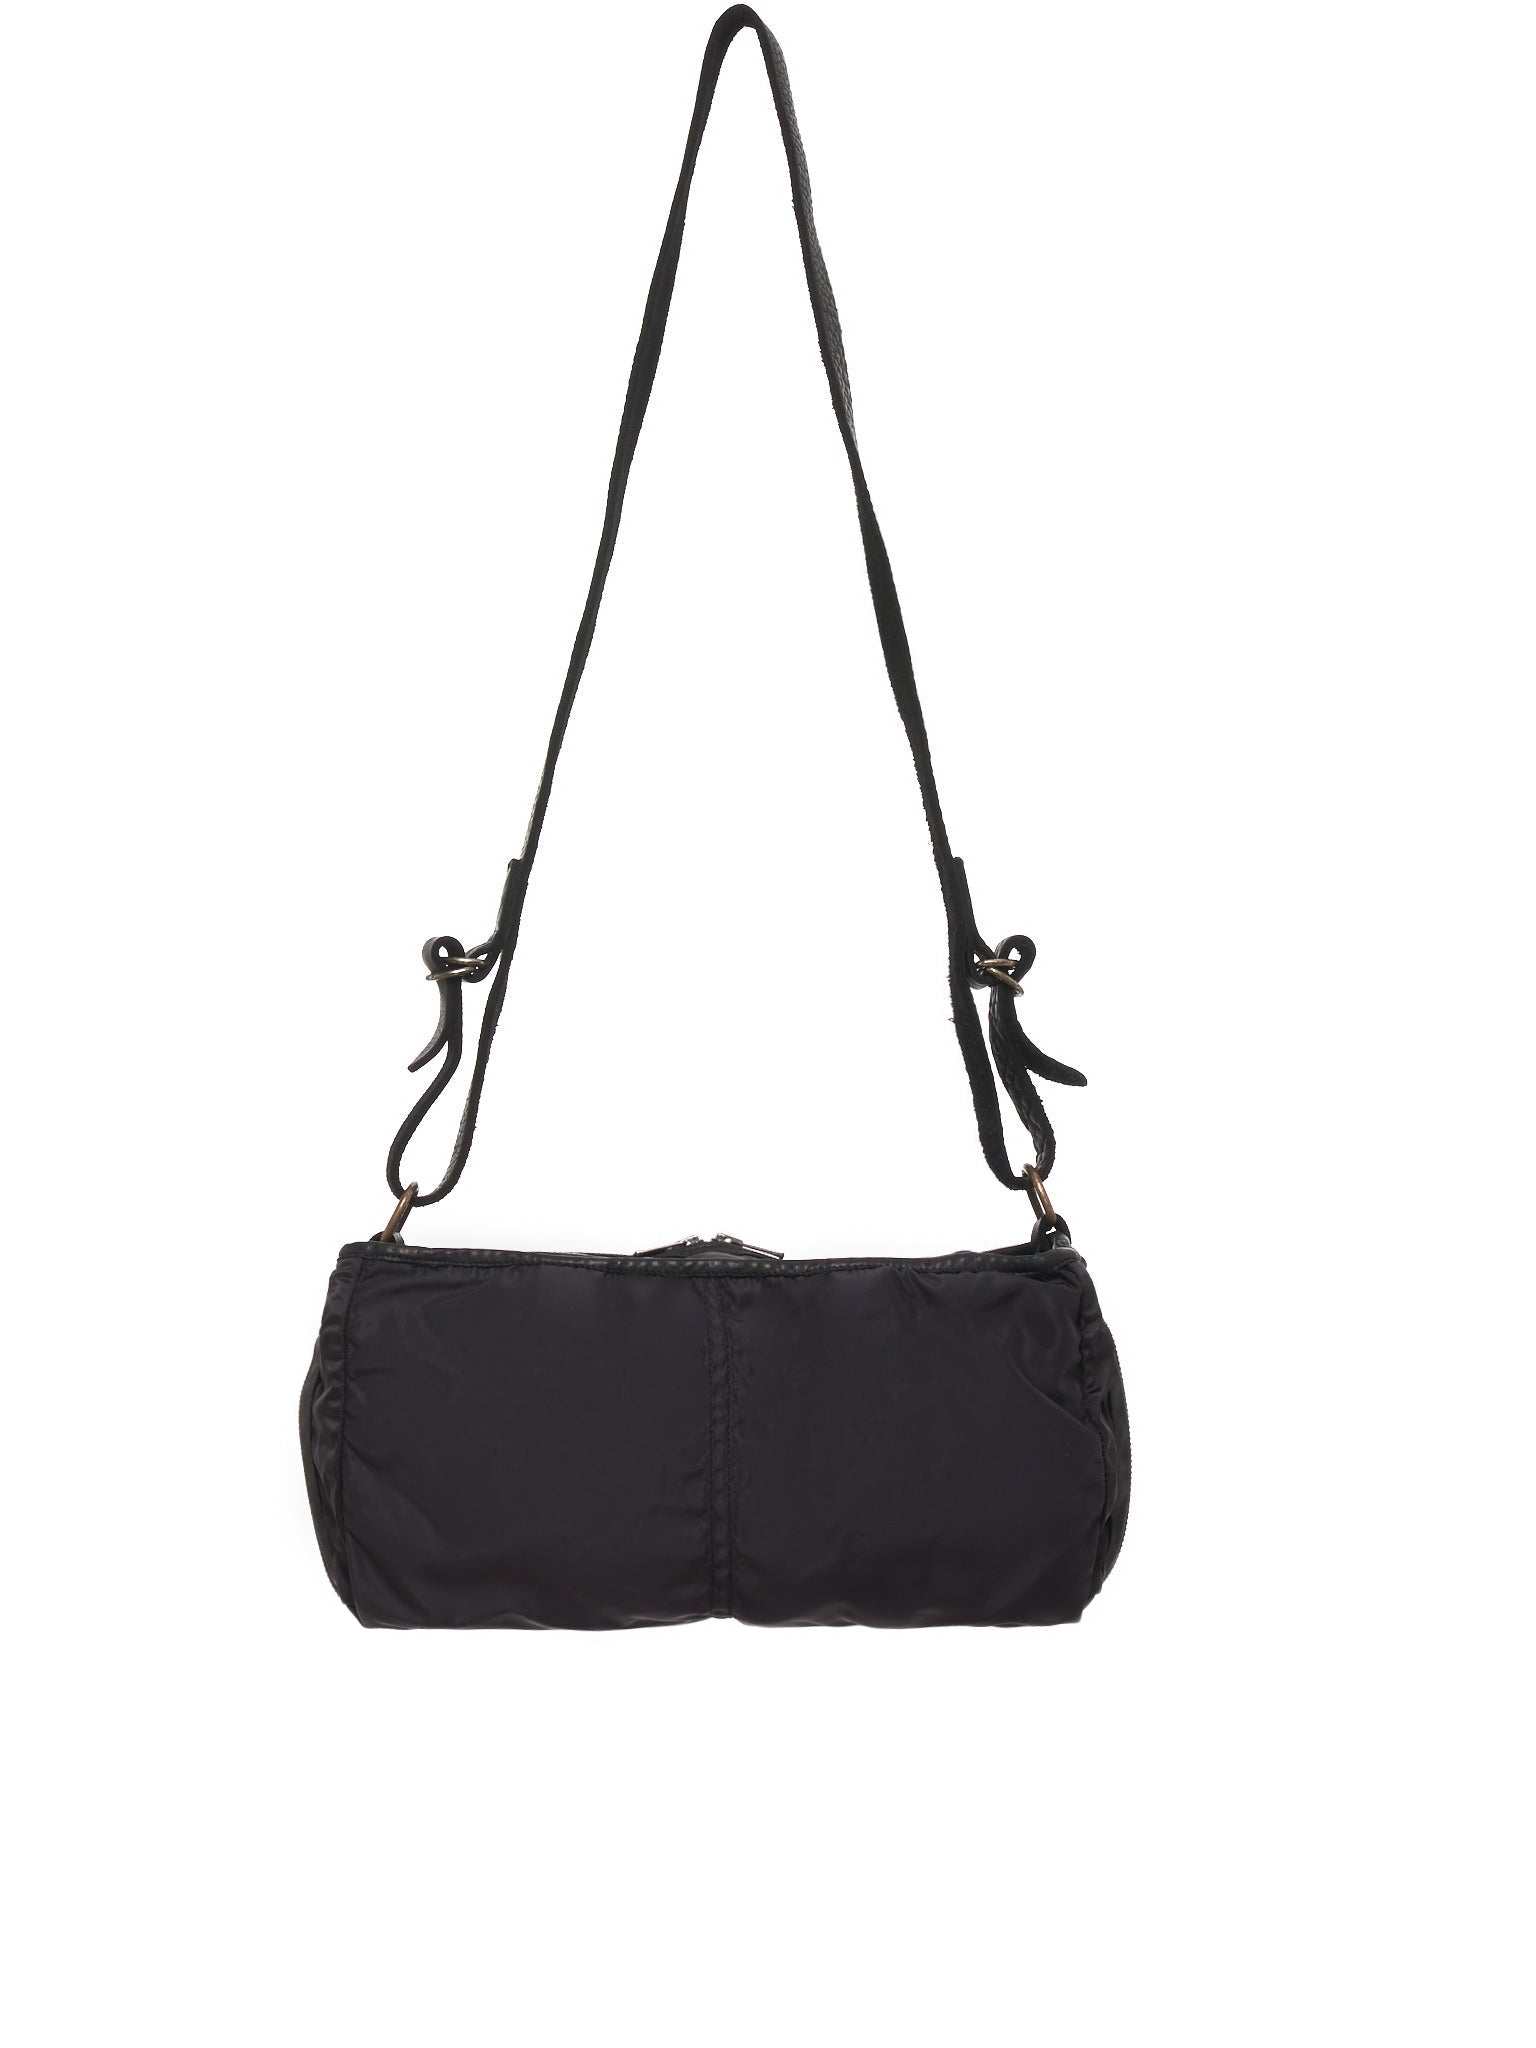 Horse Leather Shoulder Bag (SP06-SOFT-HORSE-FG-BLACKT)